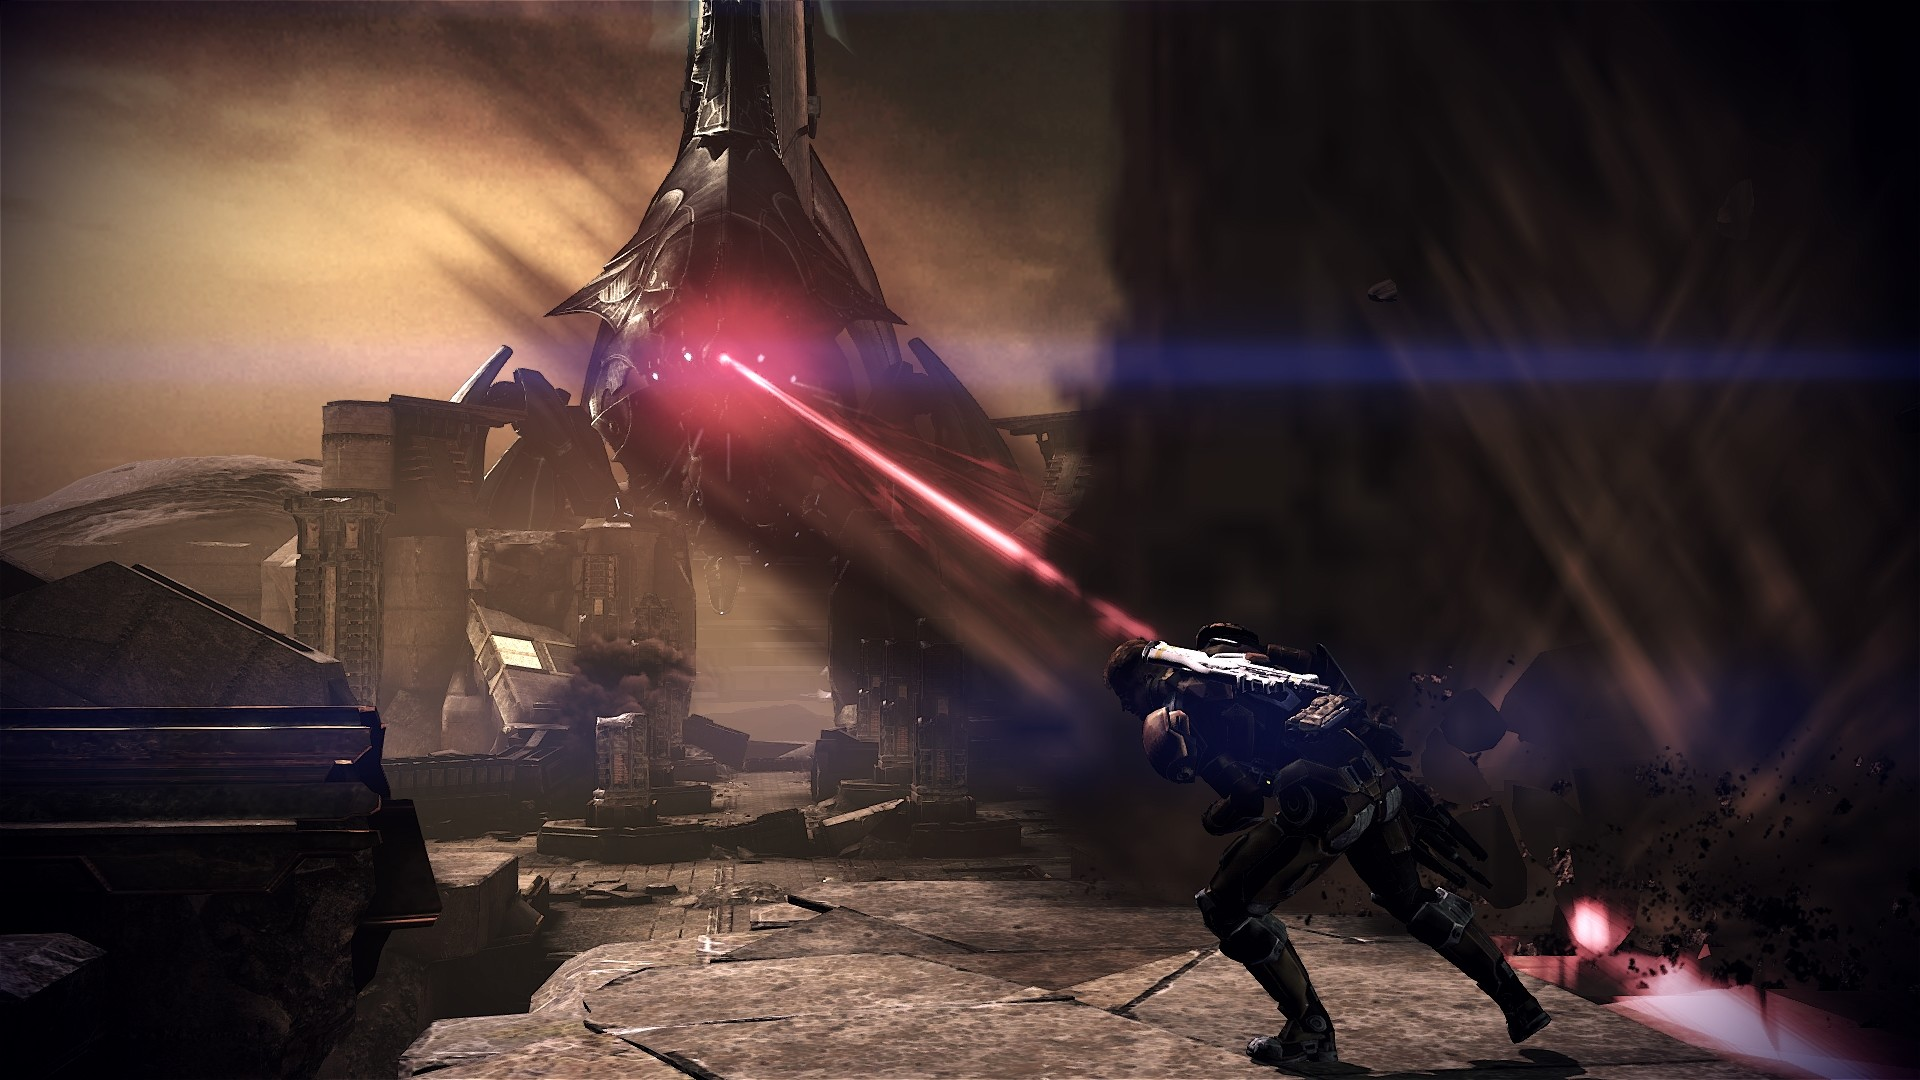 MASS EFFECT 3 images Tuchanka HD wallpaper and background photos